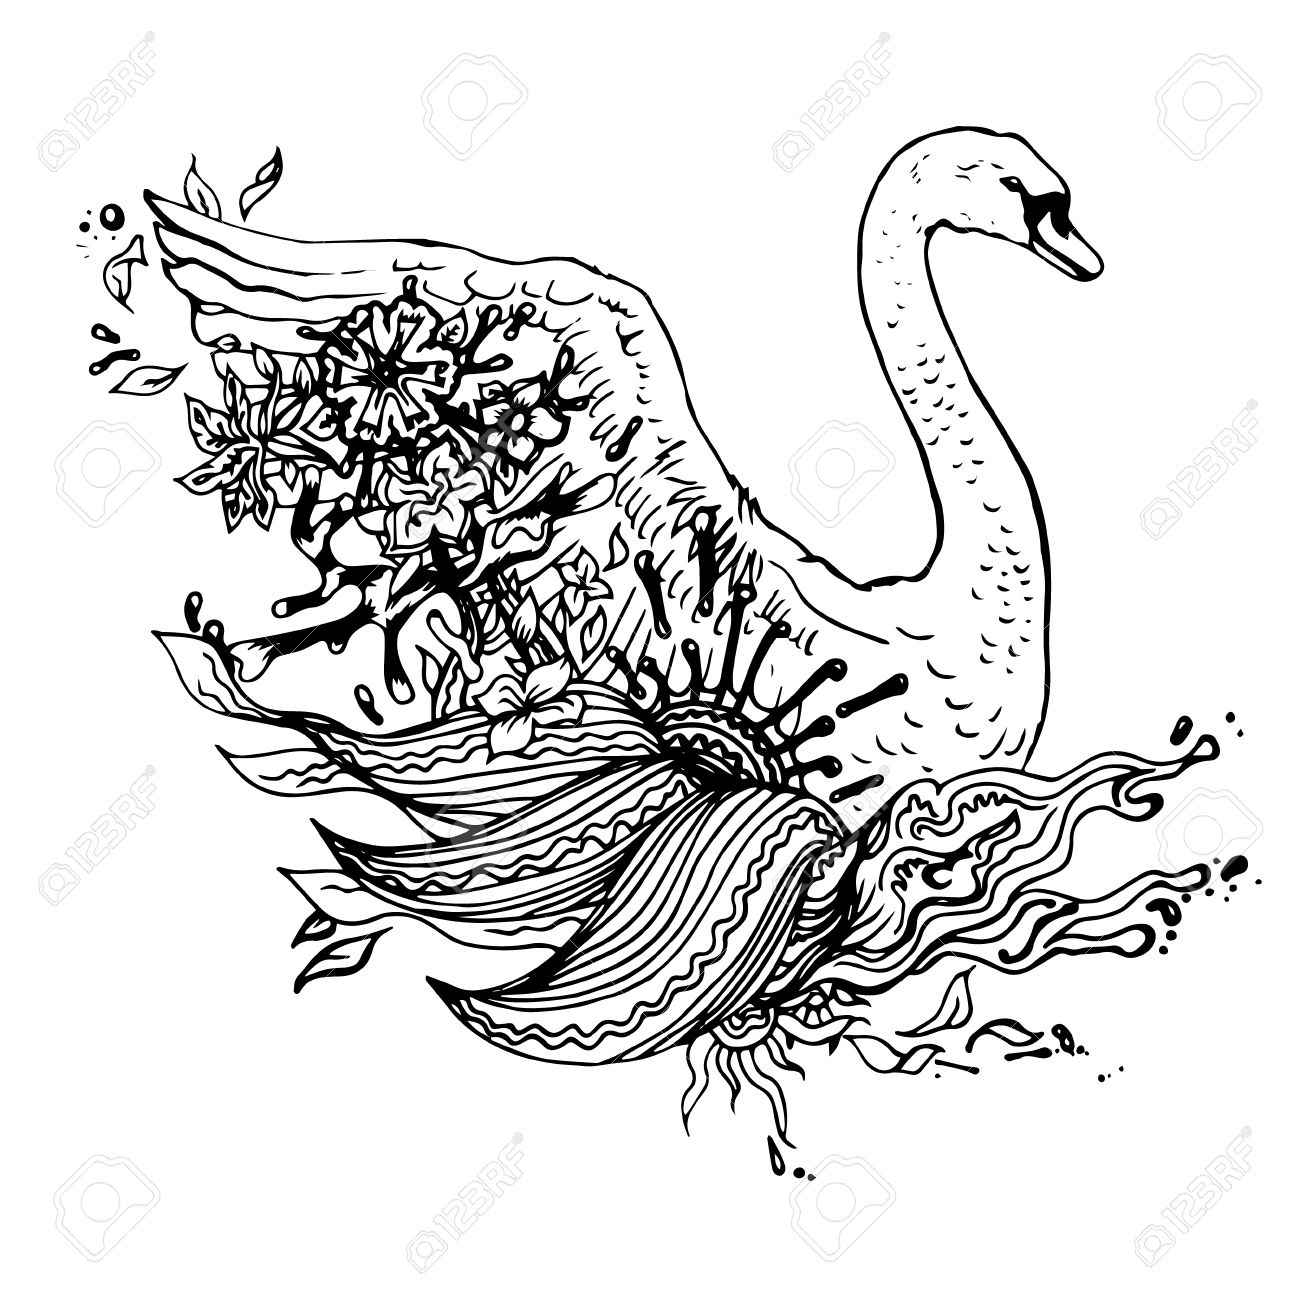 1300x1300 Black And White Swan Isolated. Engraving Sketch. Abstract Vector